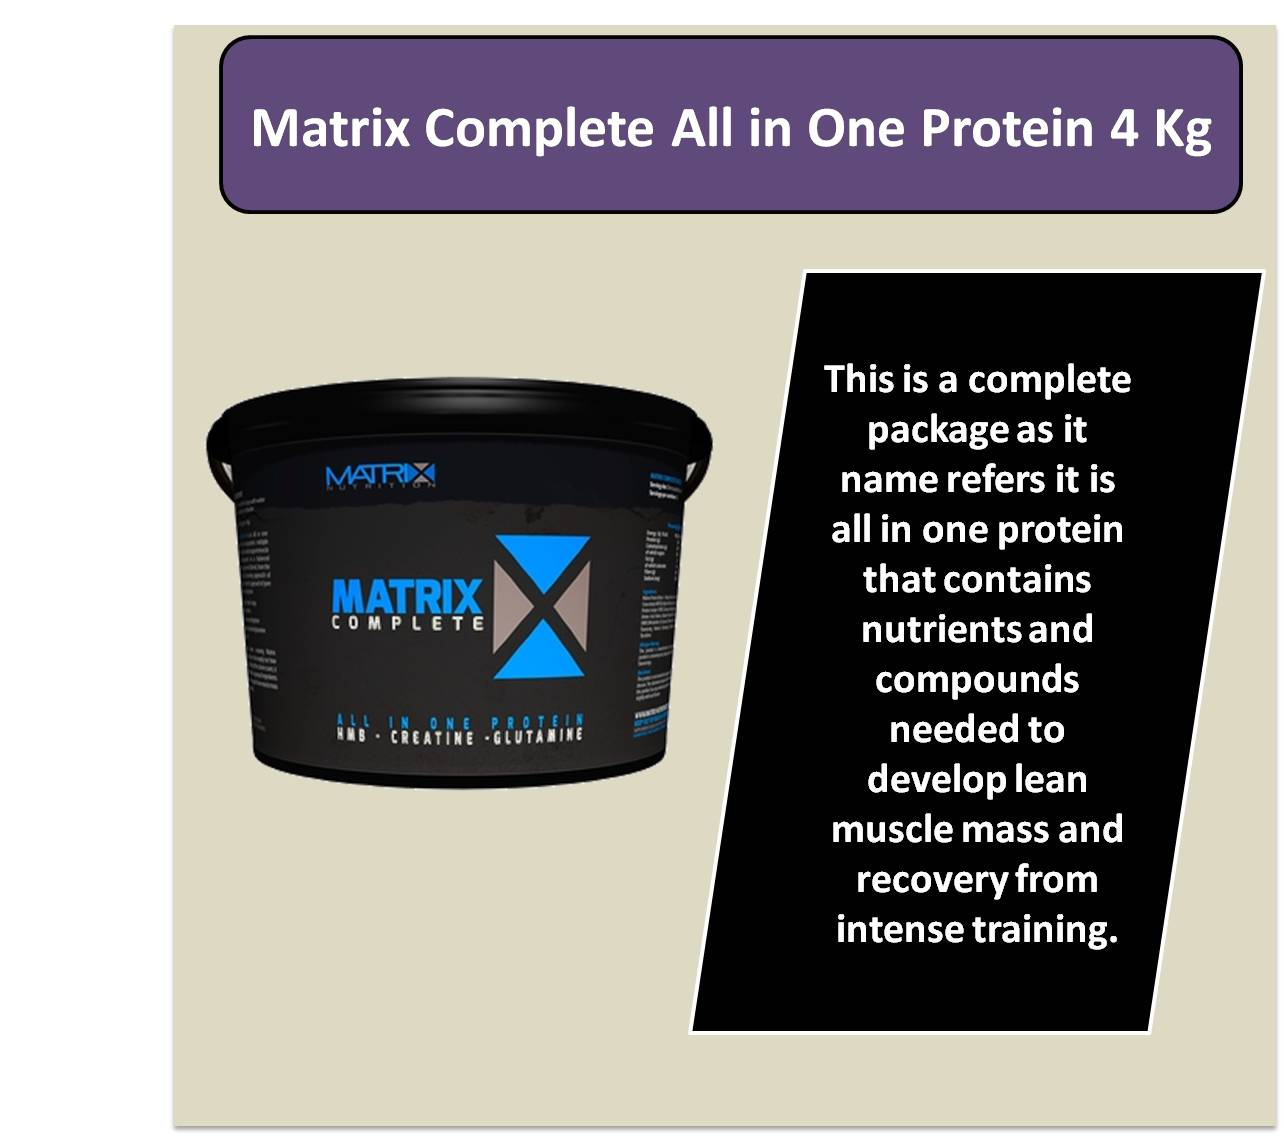 Matrix Complete All in One Protein 4 Kg